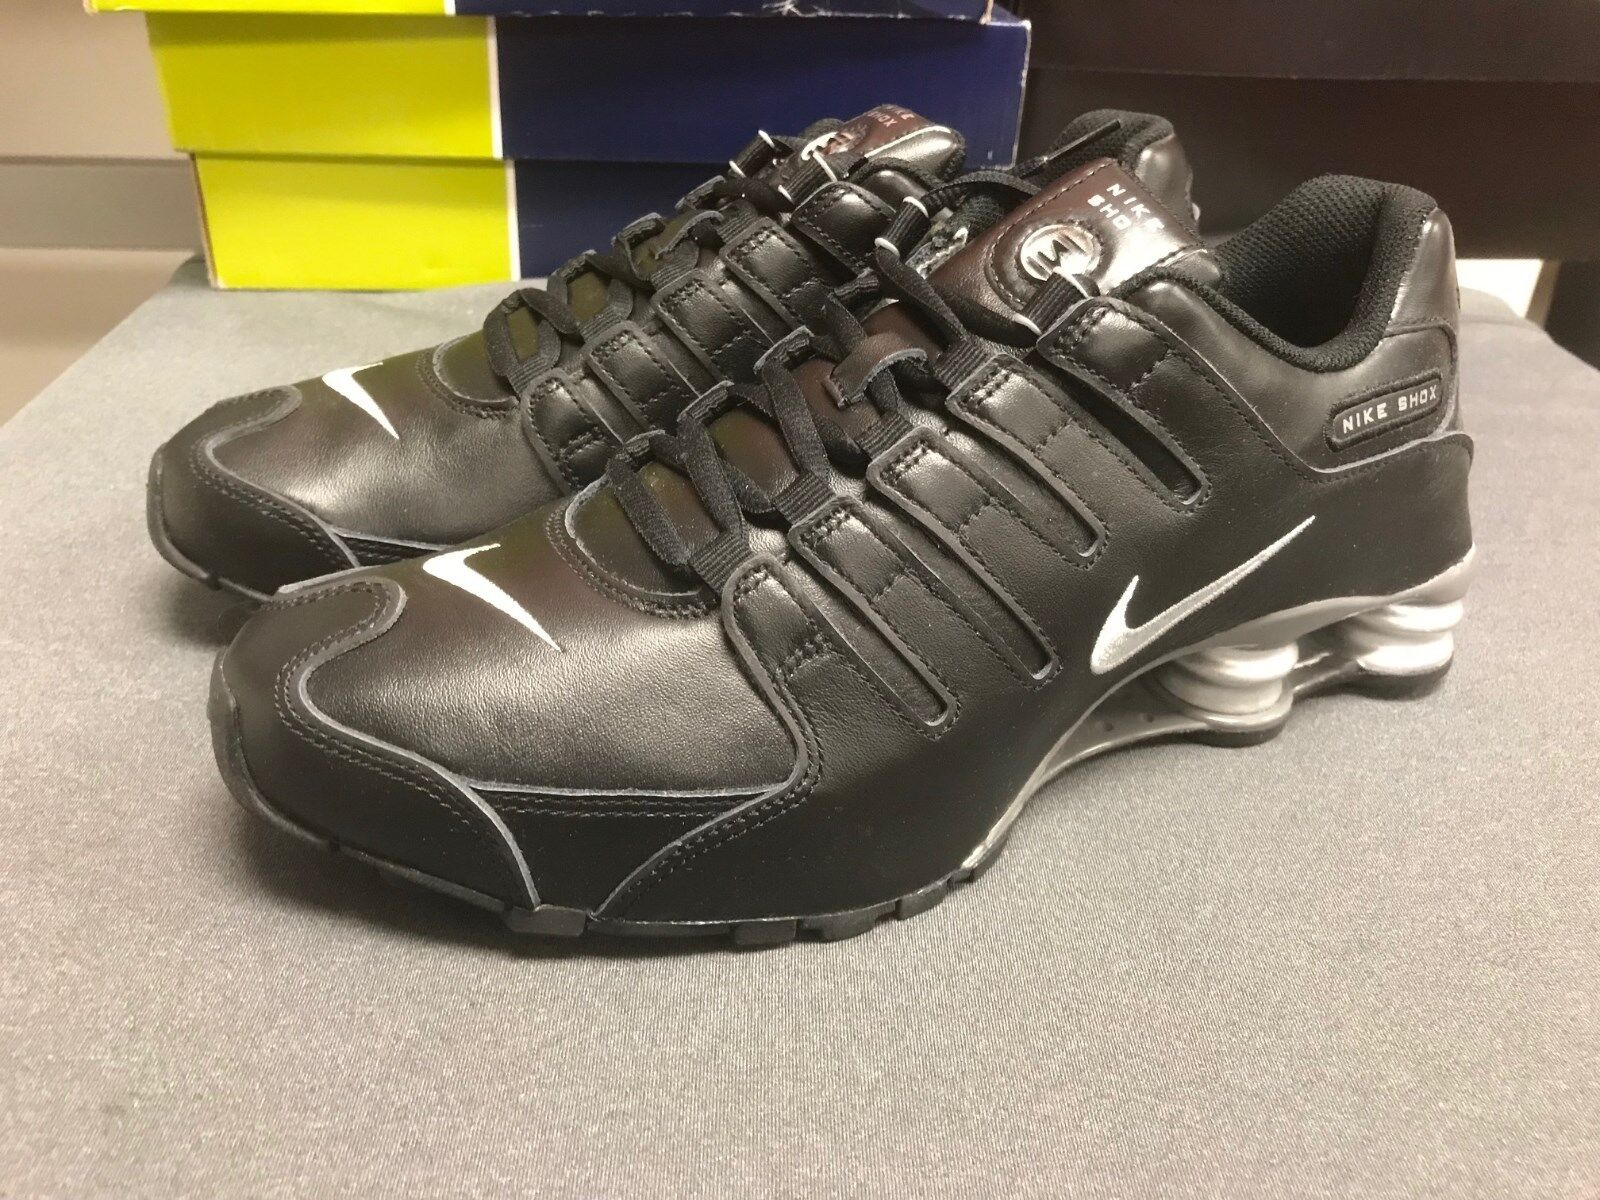 Mens Nike ID Shox NZ Premium Sneakers New, Black Gray Silver 616117-981 SKU New shoes for men and women, limited time discount